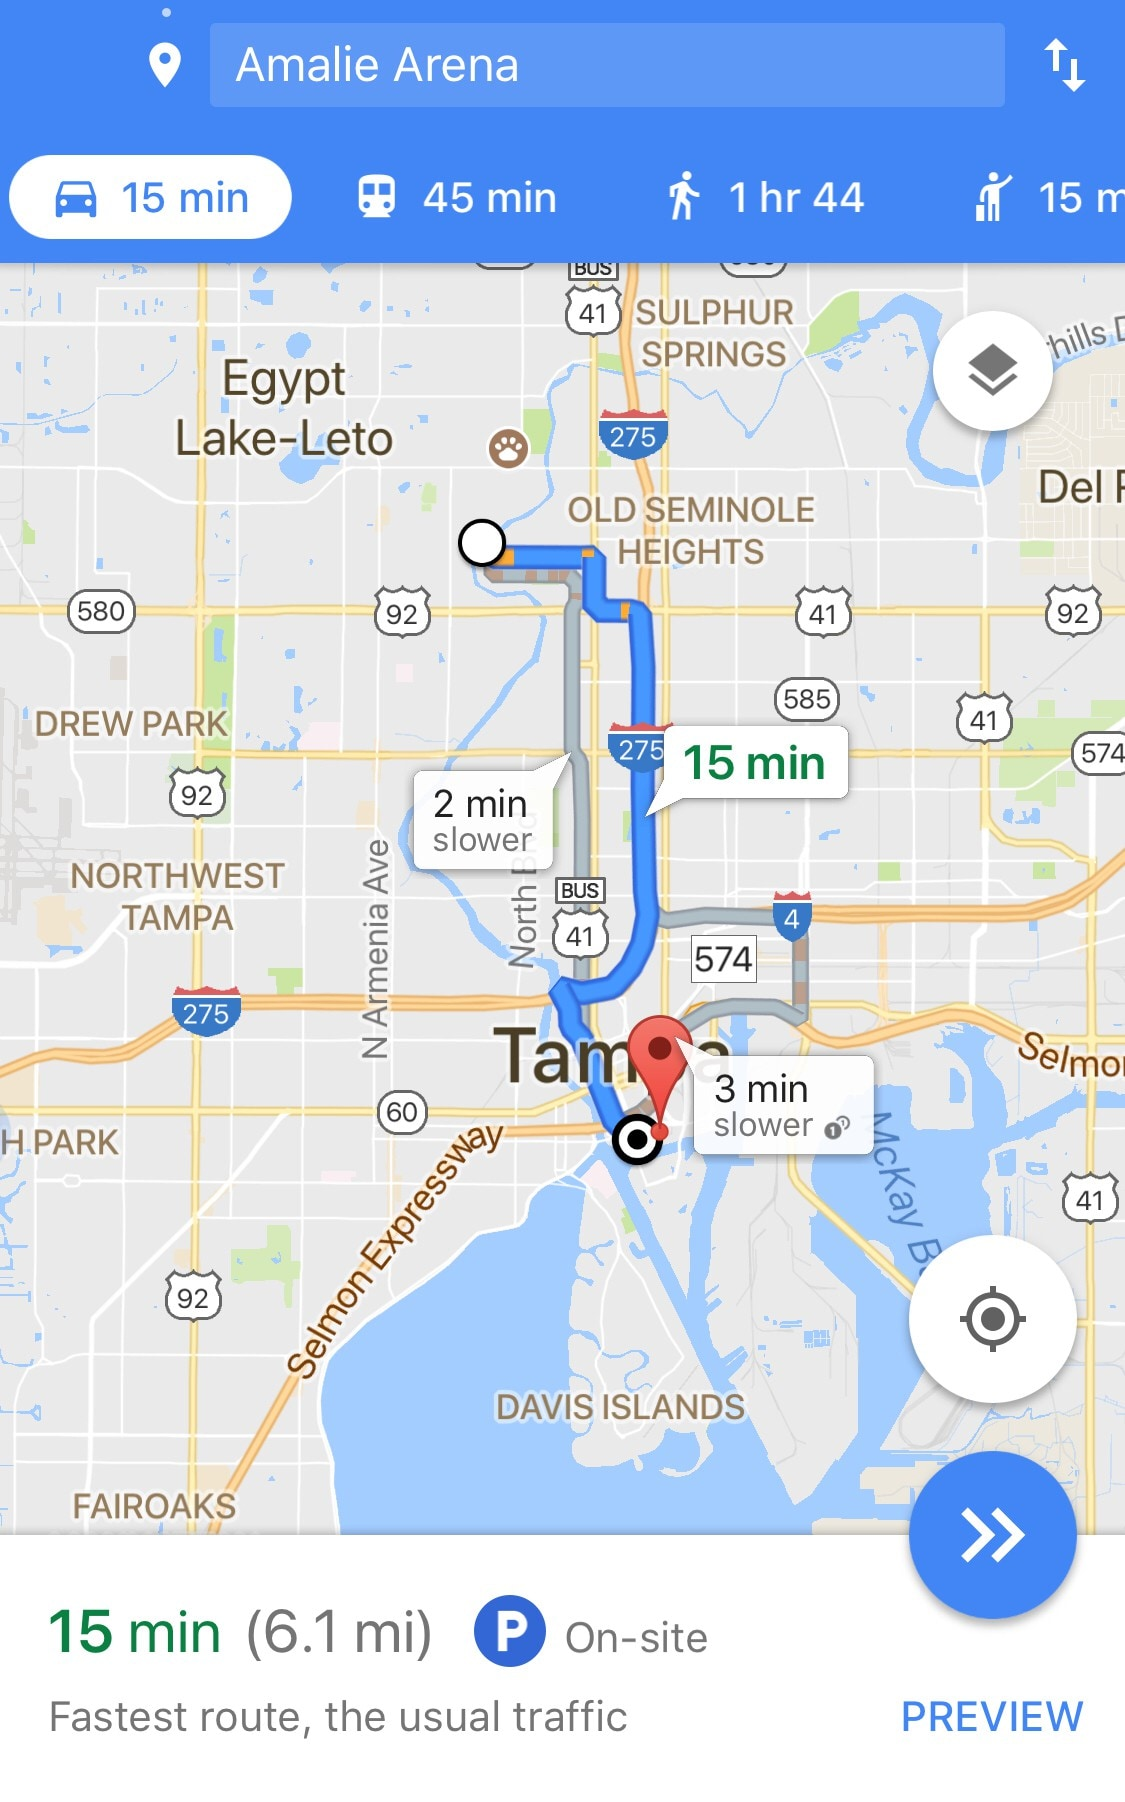 Tampa 2017: Top 20 Tampa Vacation Rentals, Vacation Homes U0026 Condo Rentals    Airbnb Tampa, Florida, United States: Tampa Vacation Rentals U0026 Weekly  Rentals ...